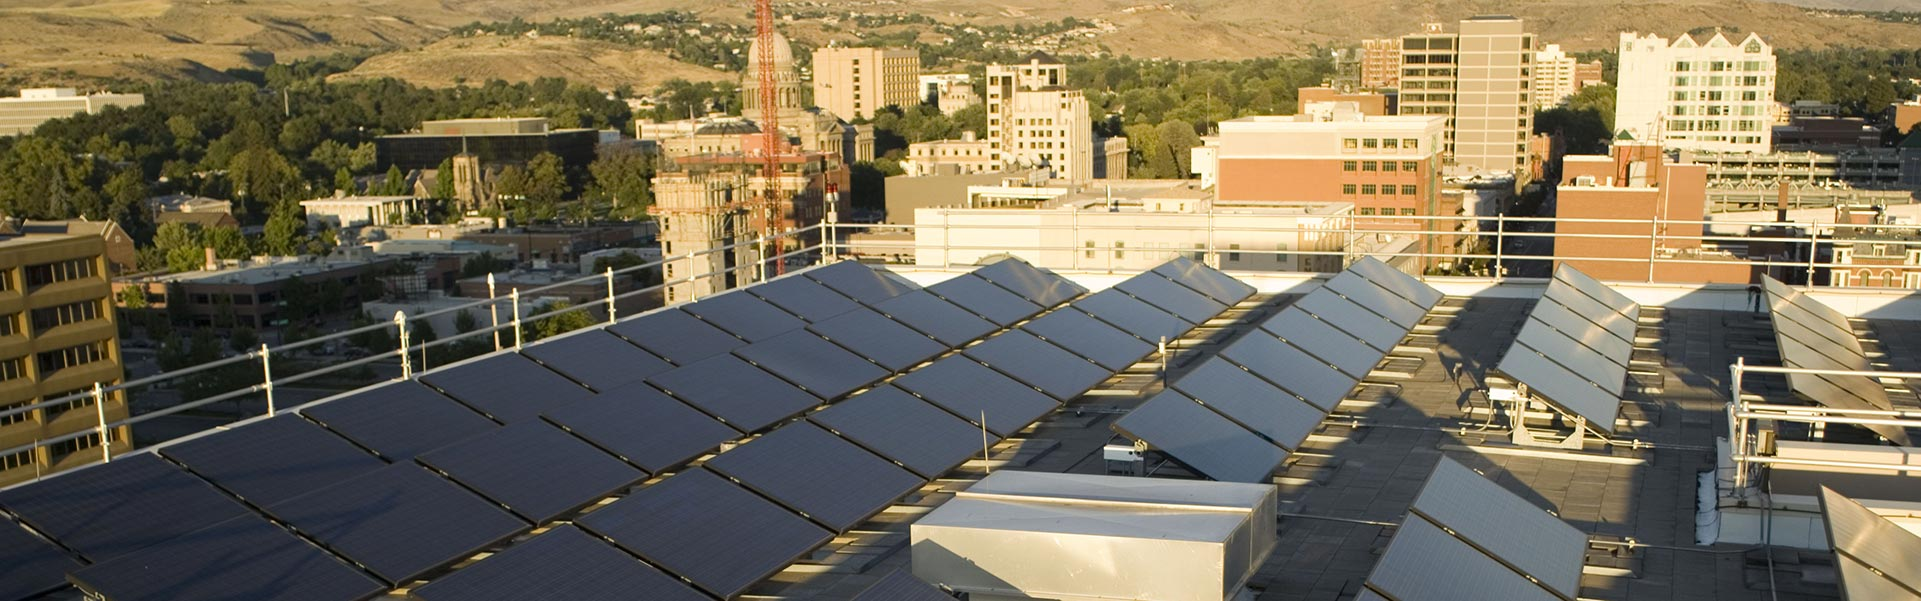 idaho power rooftop solar